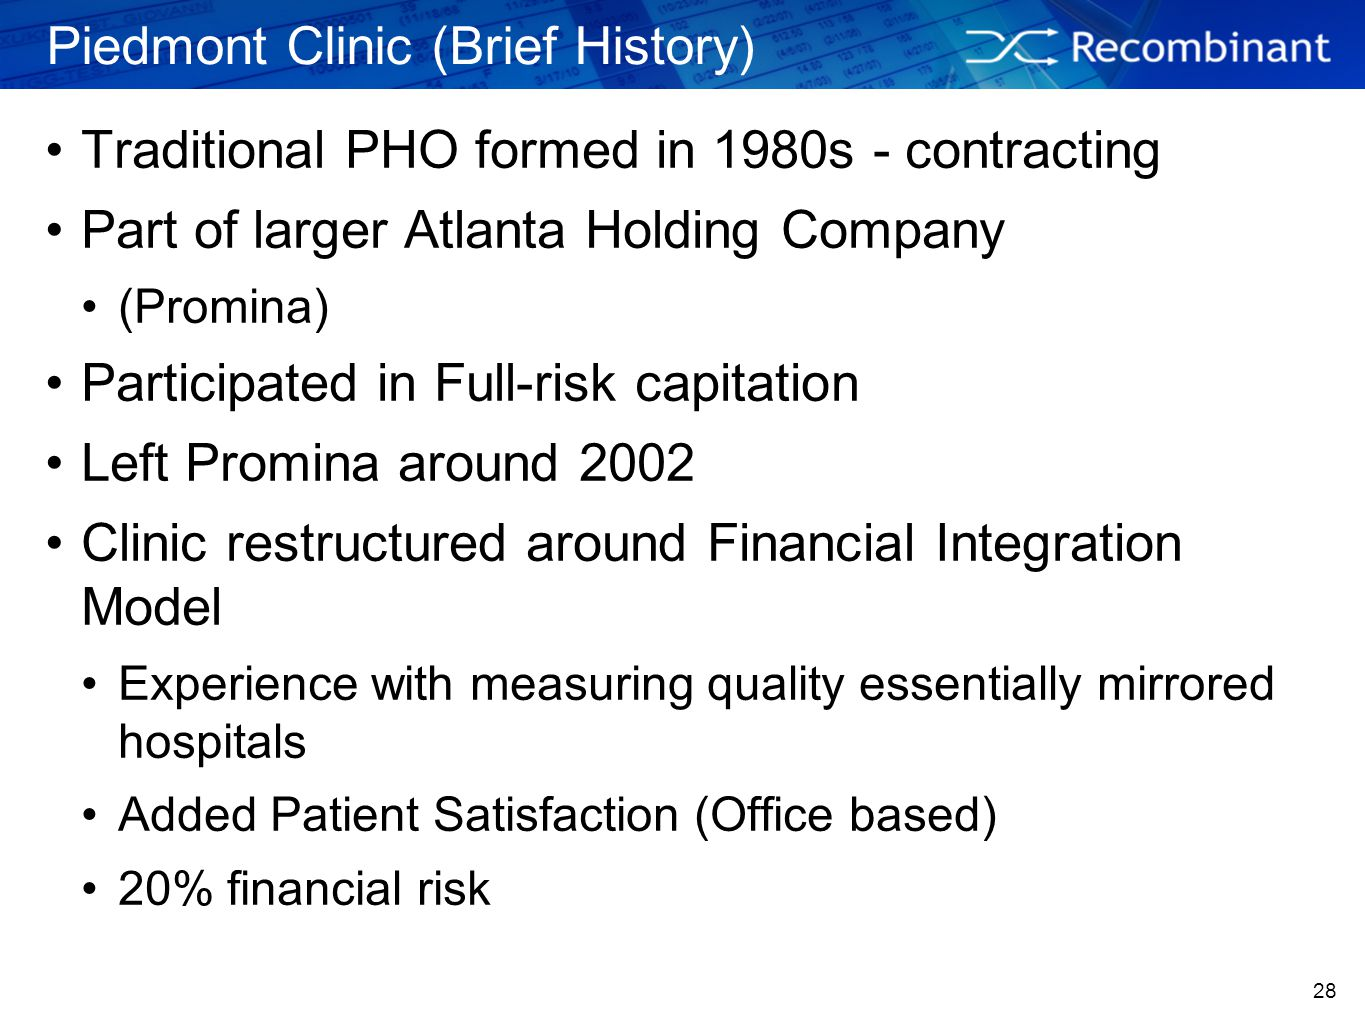 Piedmont Clinic (Brief History)